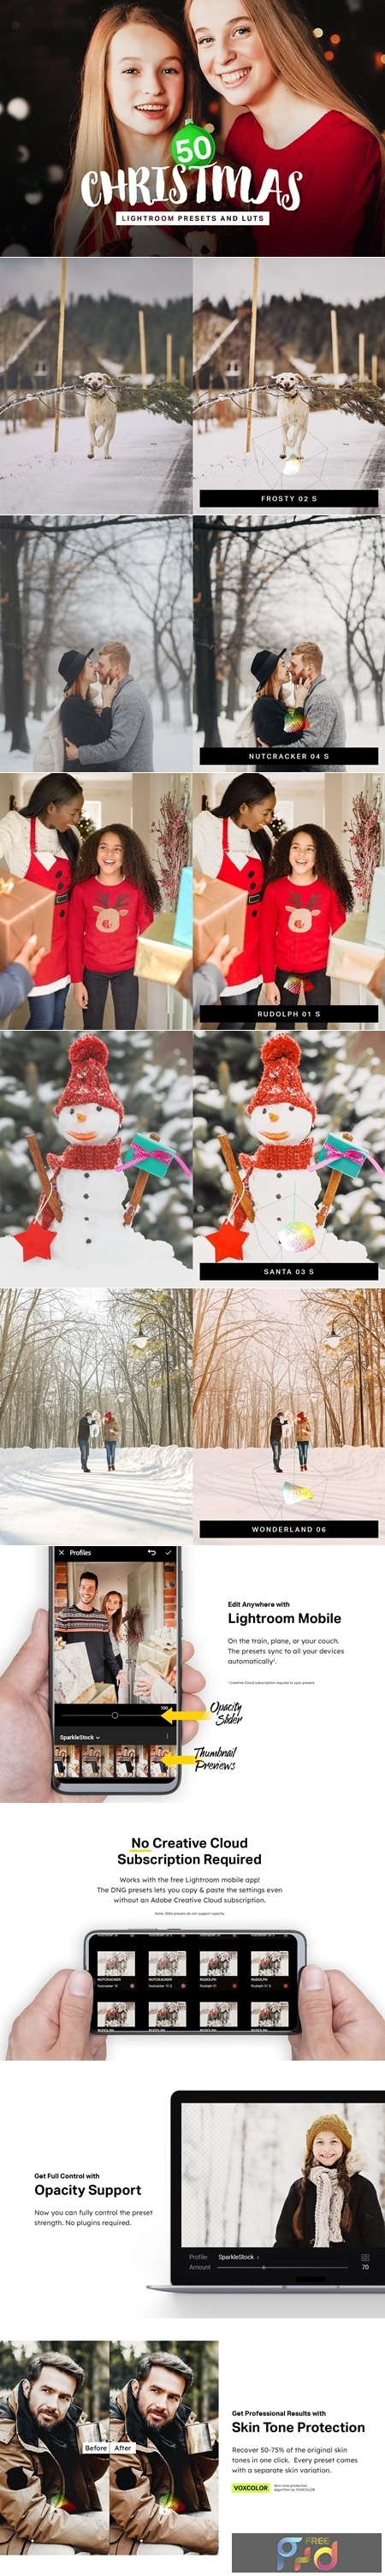 50 Christmas Lightroom Presets LUTs 4315283 1